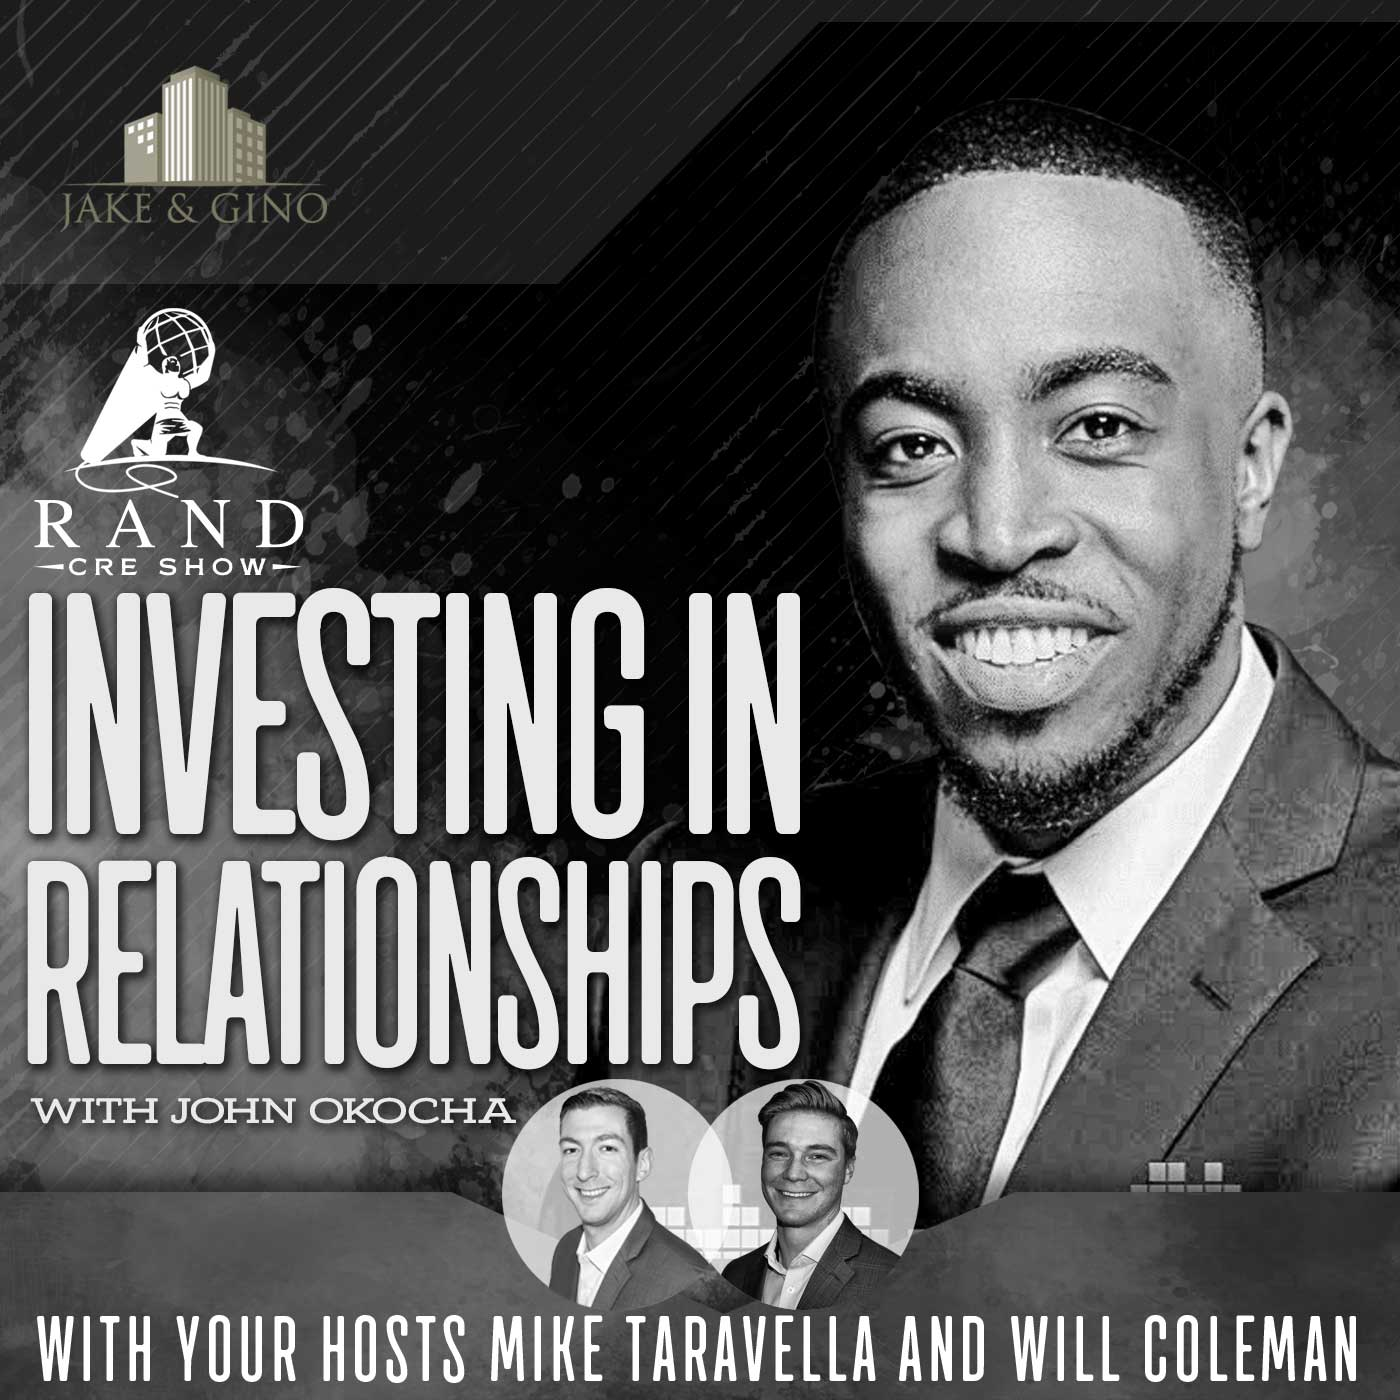 RCRE -  Investing in Relationships with John Okocha